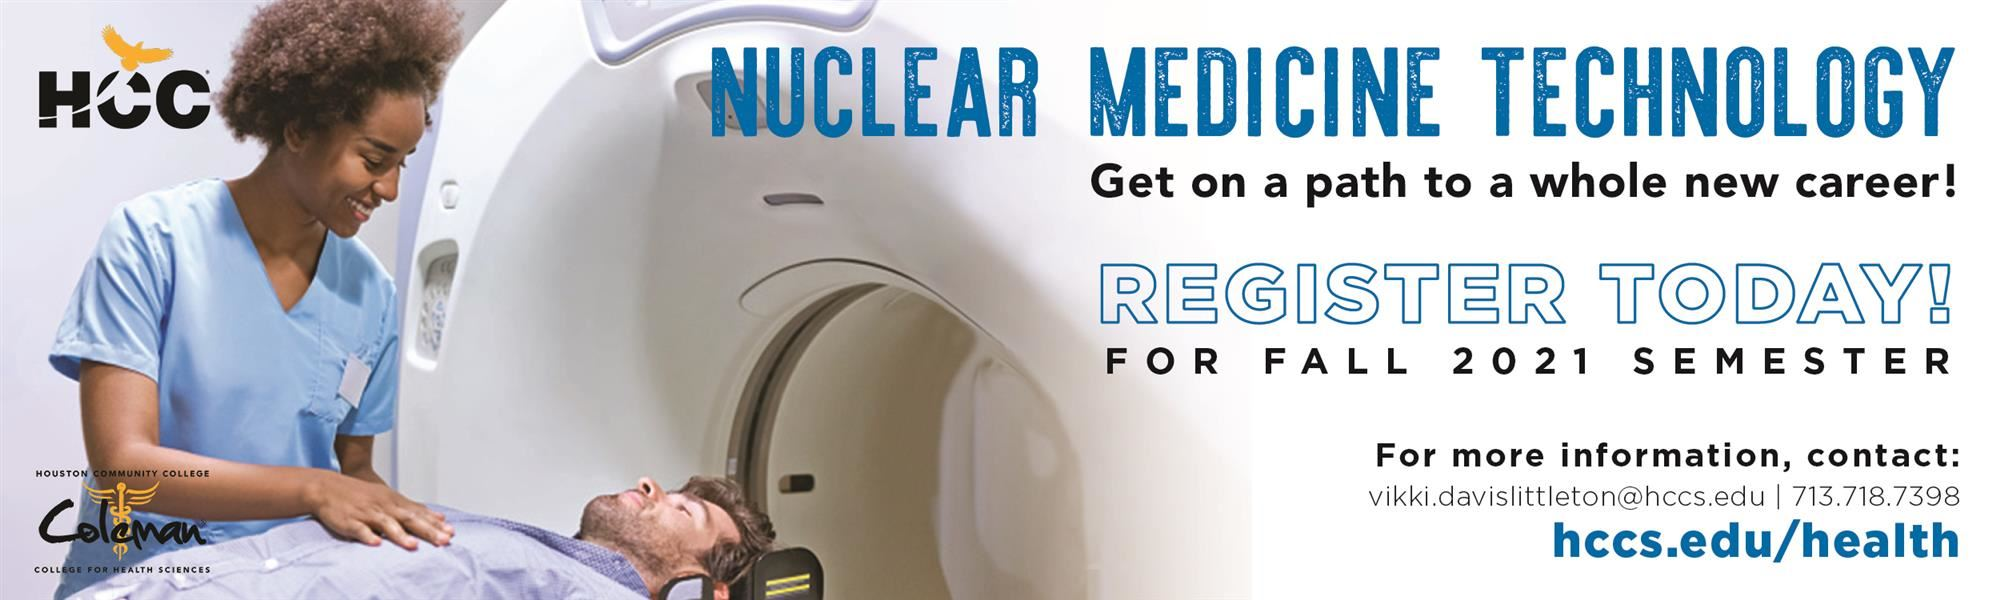 PAID AD: HCC Nuclear Medicine Technology